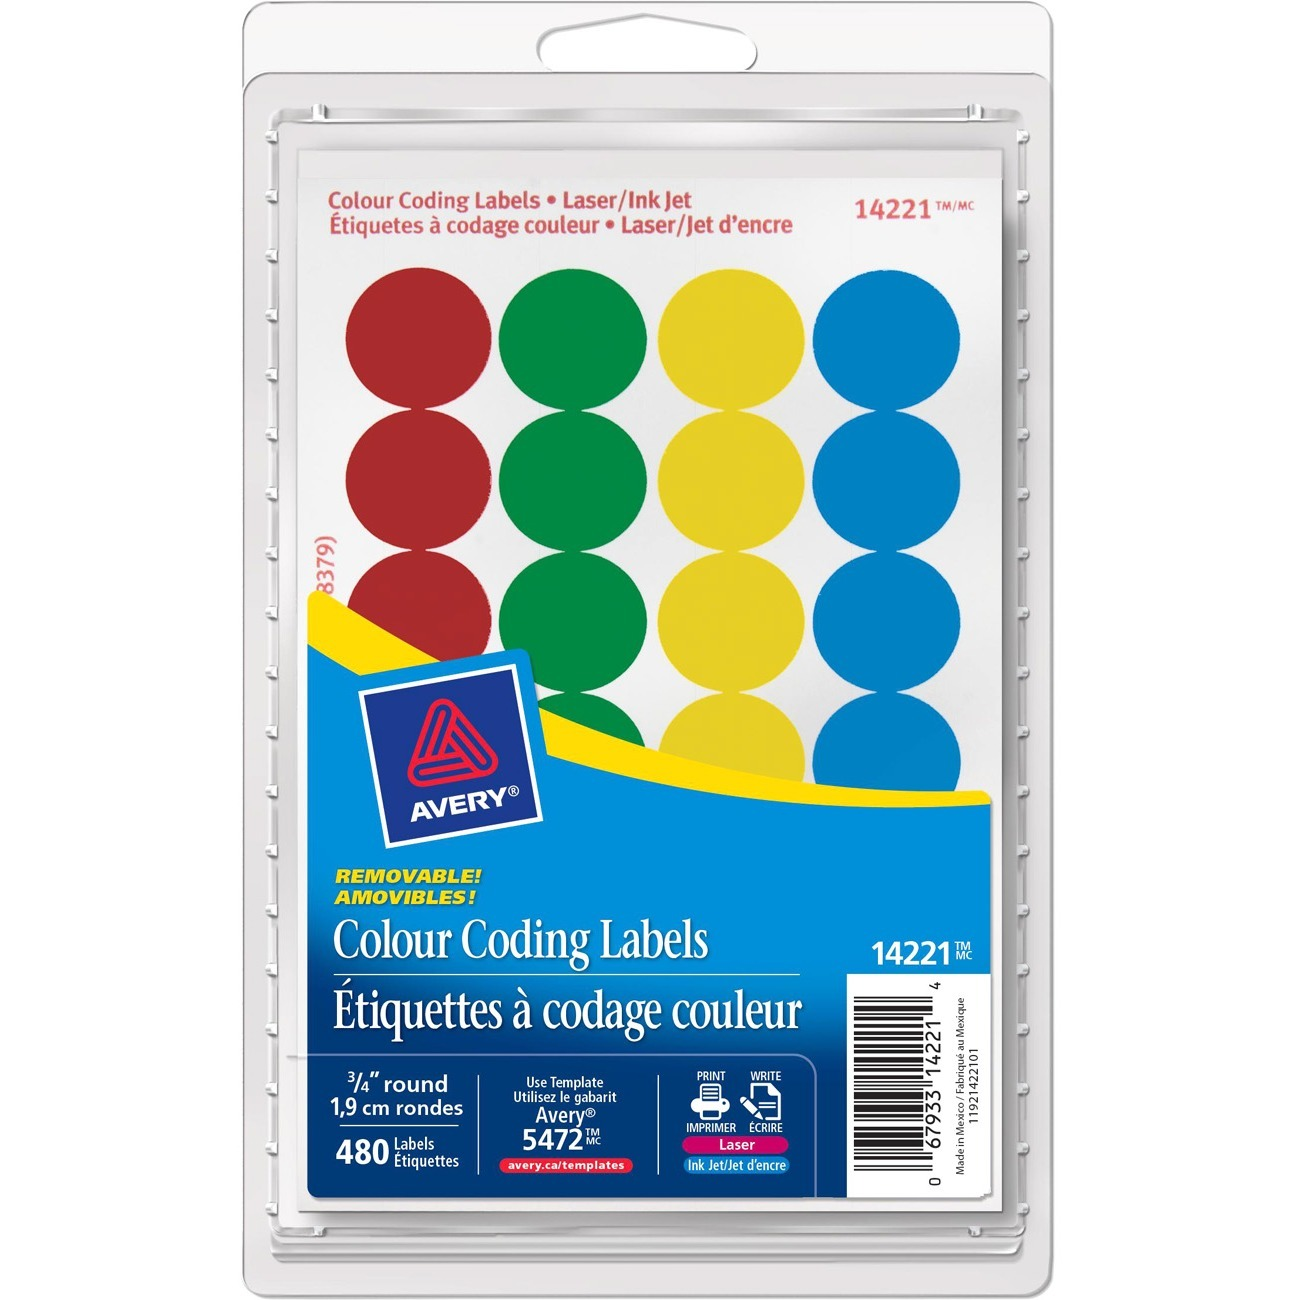 Color Coding Labels Offer A Fast Easy Way To Keep Track Of Your Files Inventory Scheduling Documents And More Removable Self Adhesive Peels Away